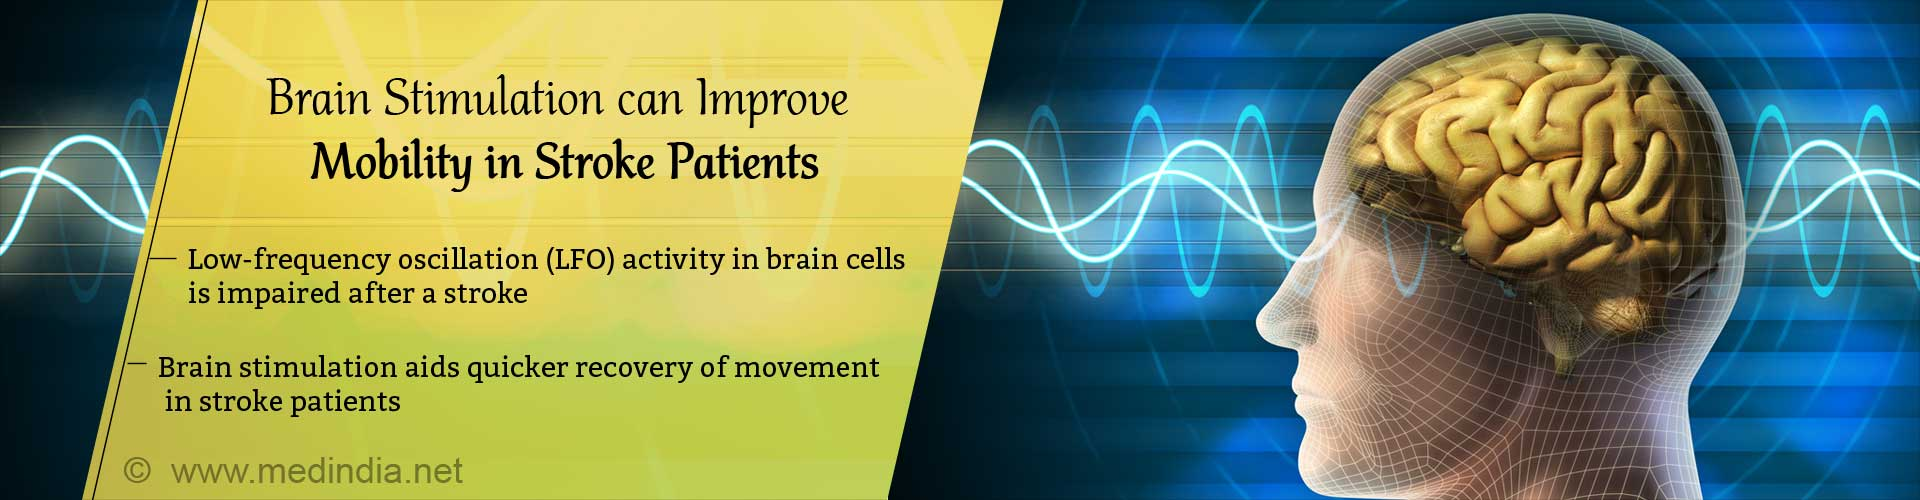 Brain stimulation can improve mobility in stroke patients. Low-frequency oscillation (LFO) activity in brain cells is impaired after a stroke. Brain stimulation aids quicker recovery of movement in stroke patients.